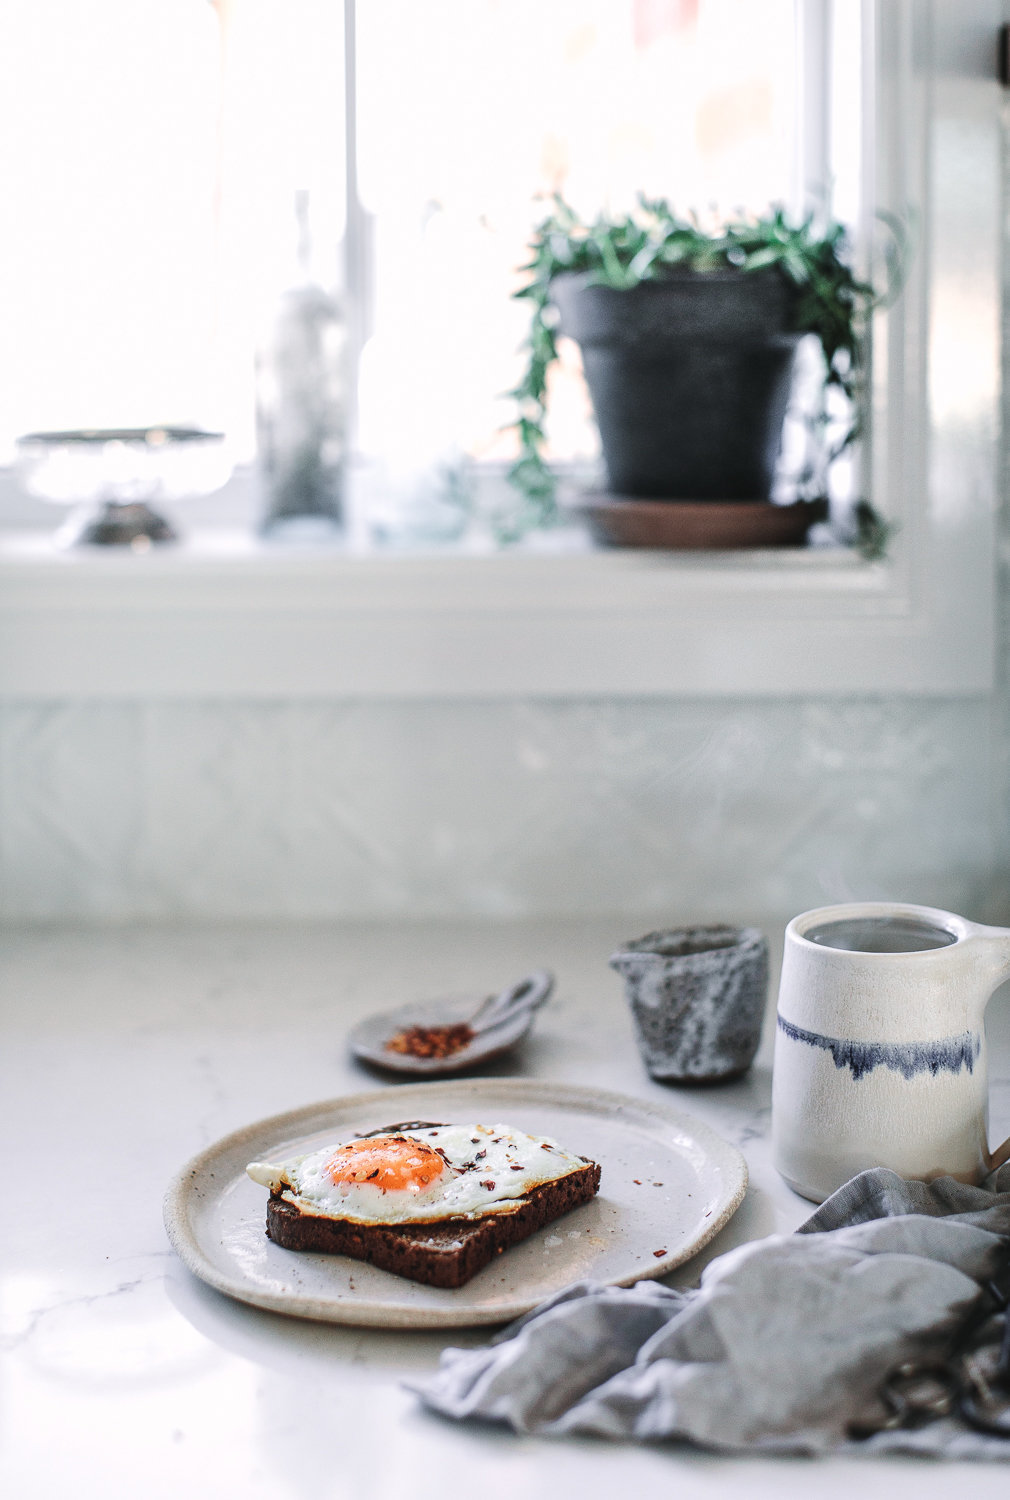 Eggs & Coffee - Anisa Sabet - The Macadames - Food Travel Lifestyle Photographer-312